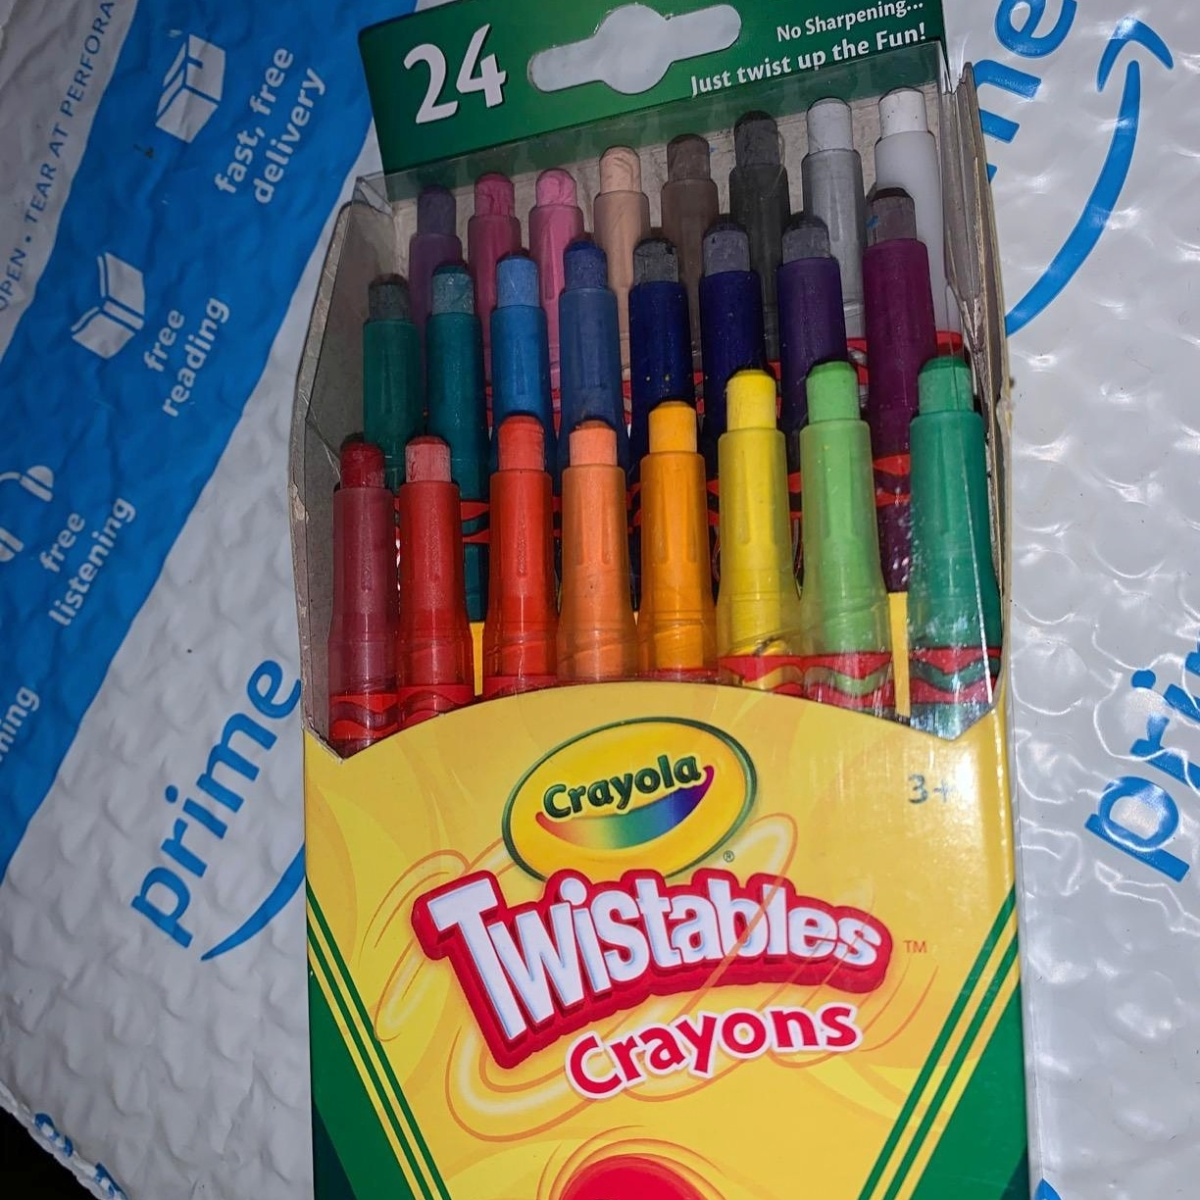 24 pack of twistable crayons